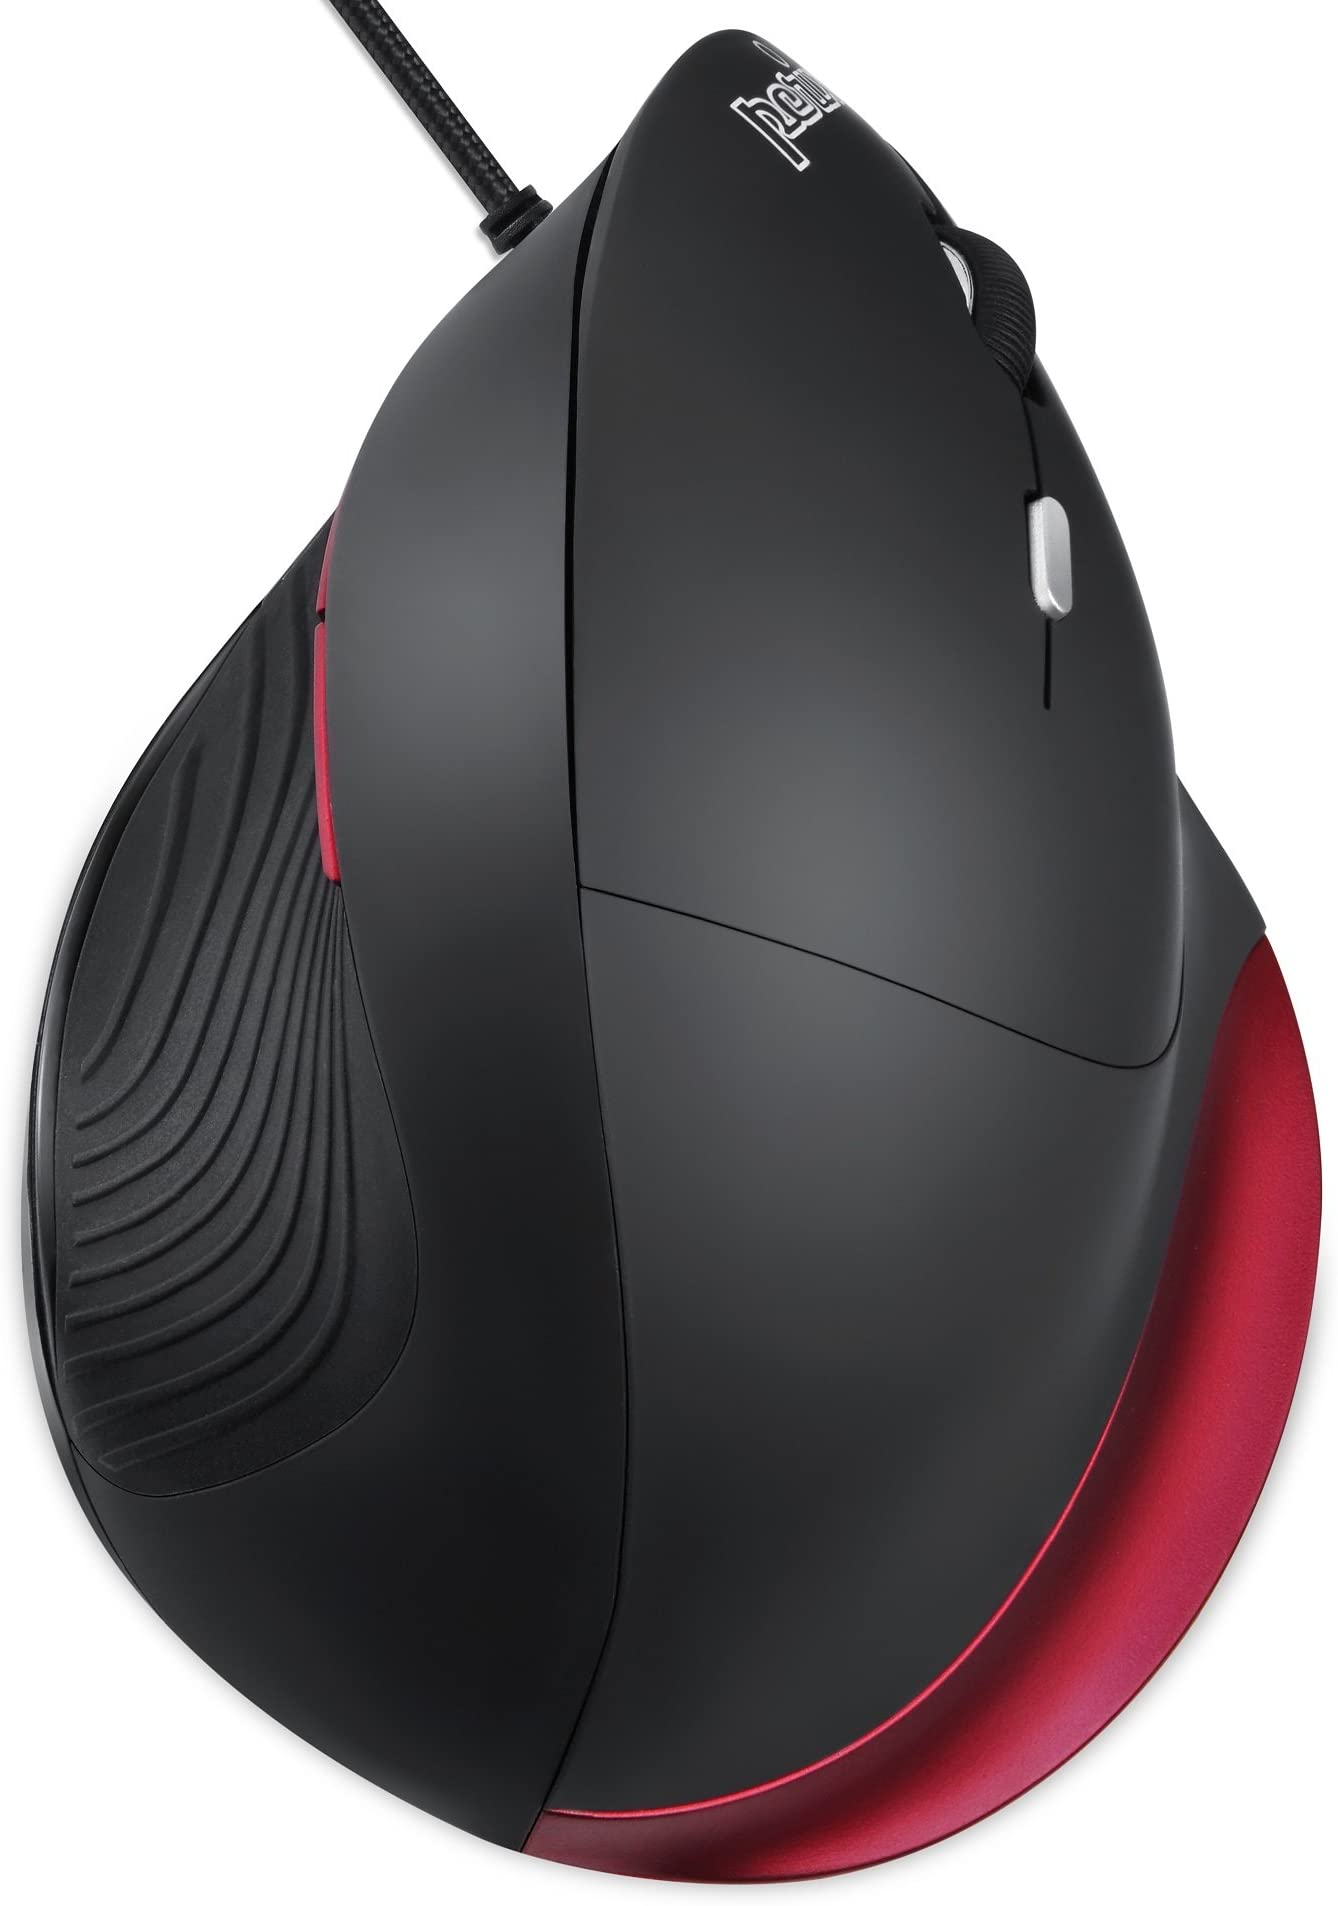 Perixx PERIMICE-518R Wired Vertical USB Mouse, 6 Buttons and 2 Level 1000/1600 DPI, Right Handed Design